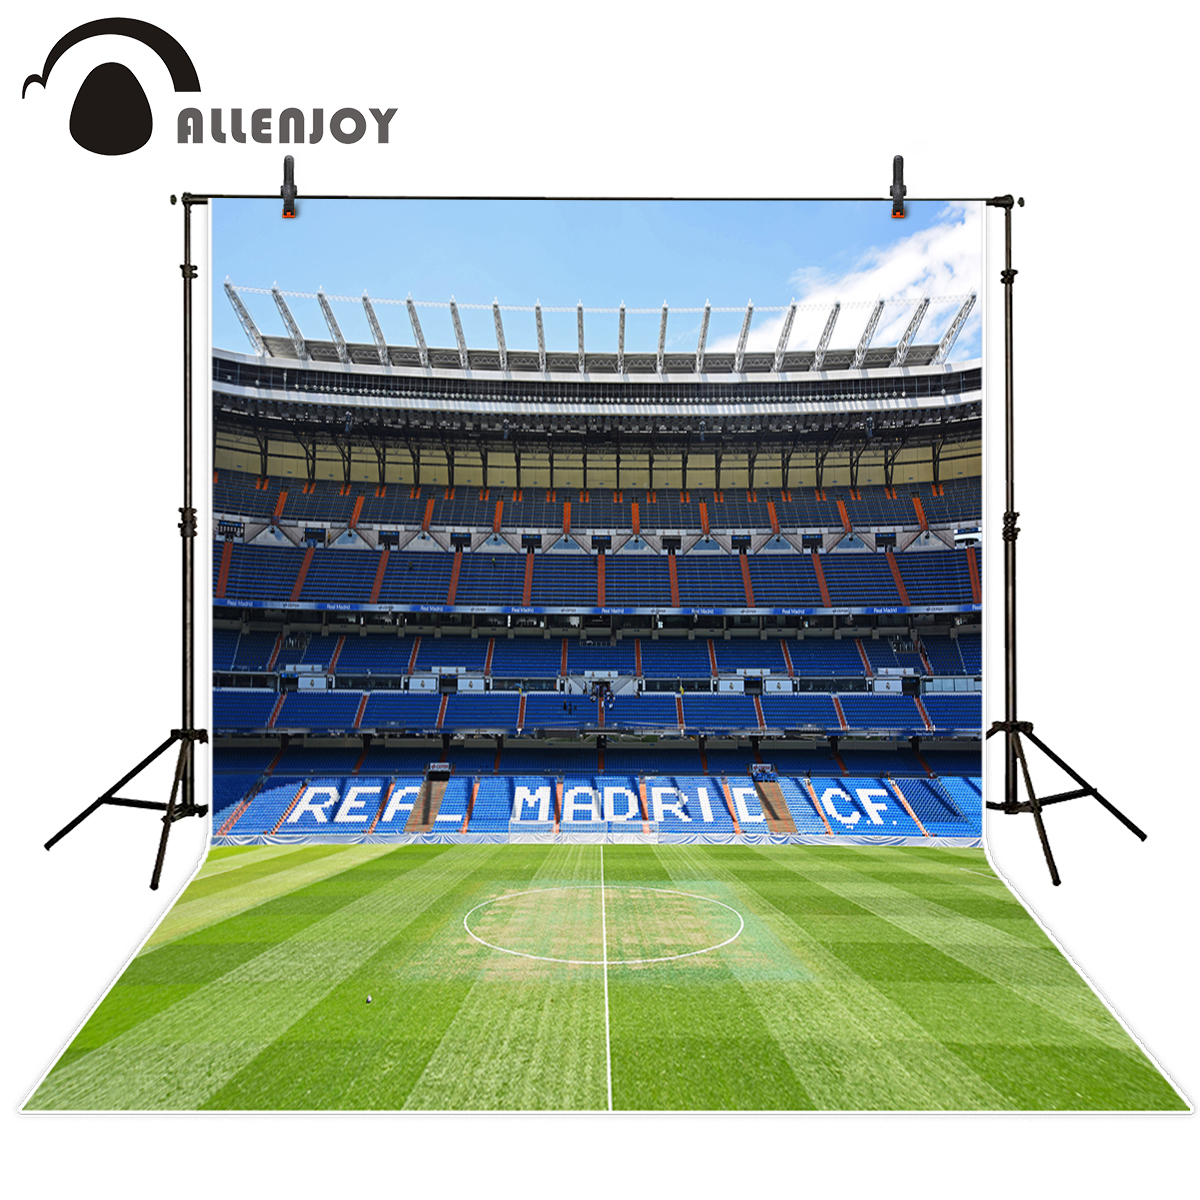 Allenjoy photocall real football field customize background birthday celebration communion Photocall for weddings